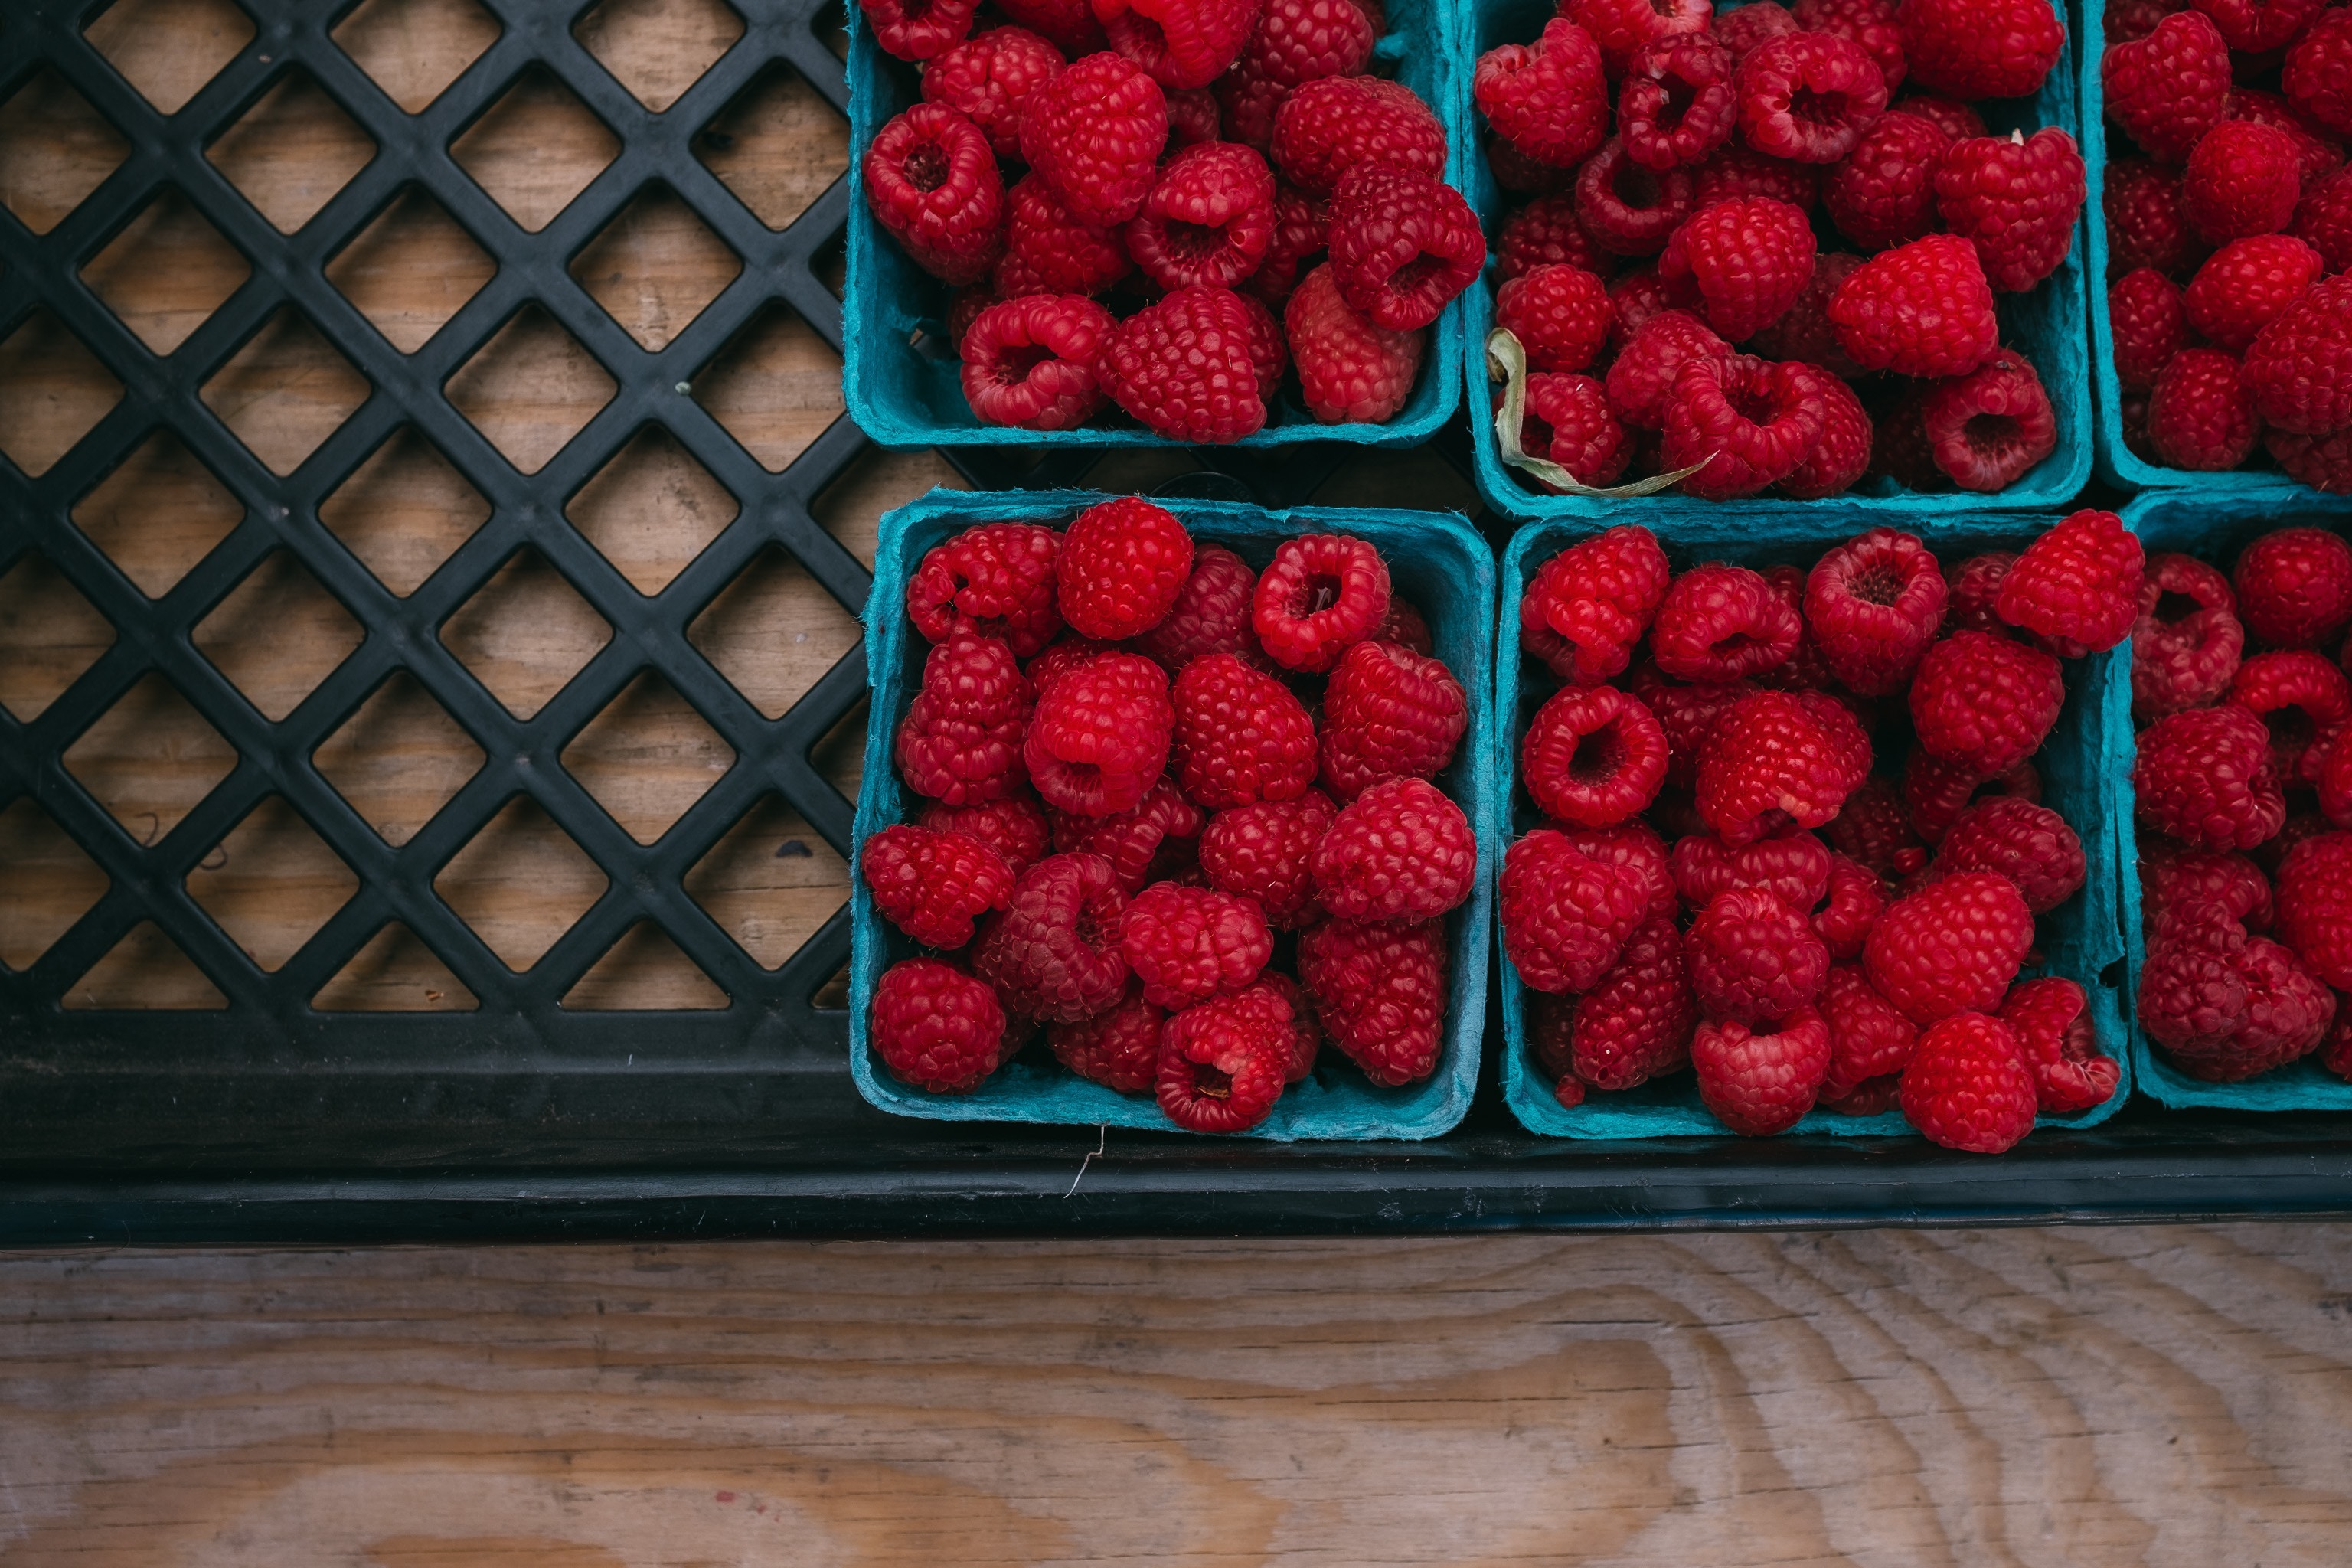 overview of 4 small baskets of raspberries